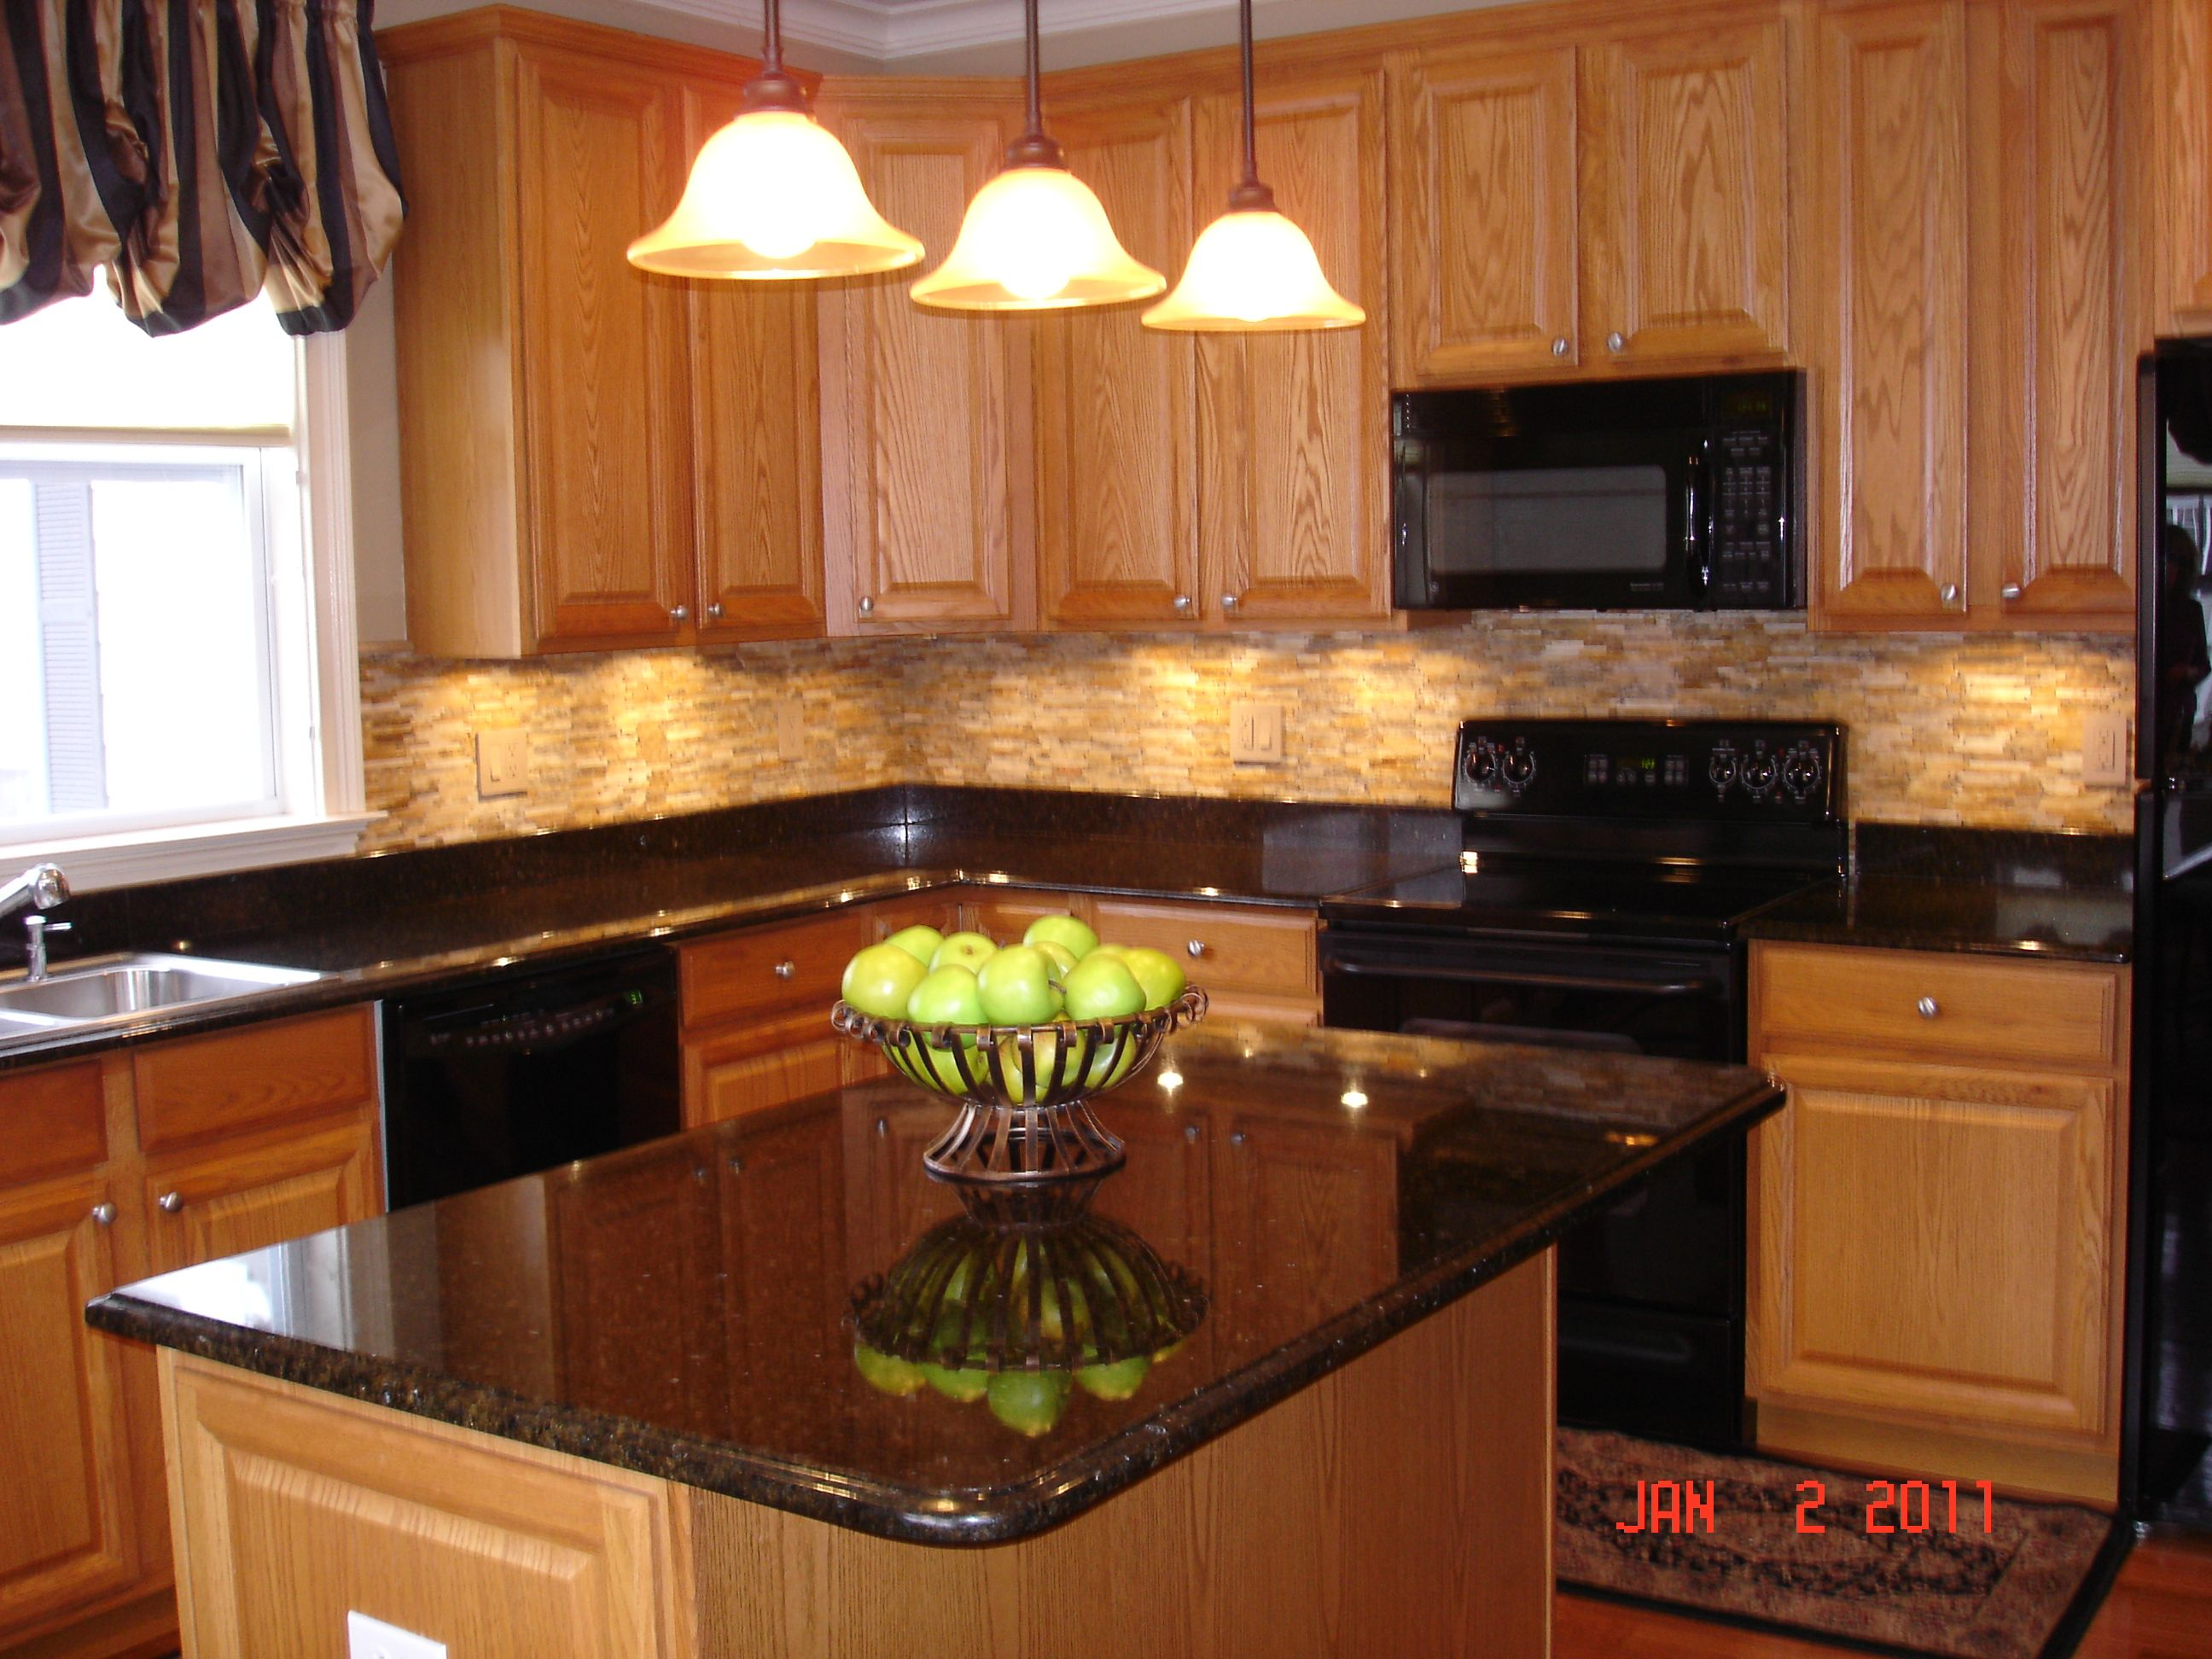 Discount kitchen cabinets used marble countertops used bathroom